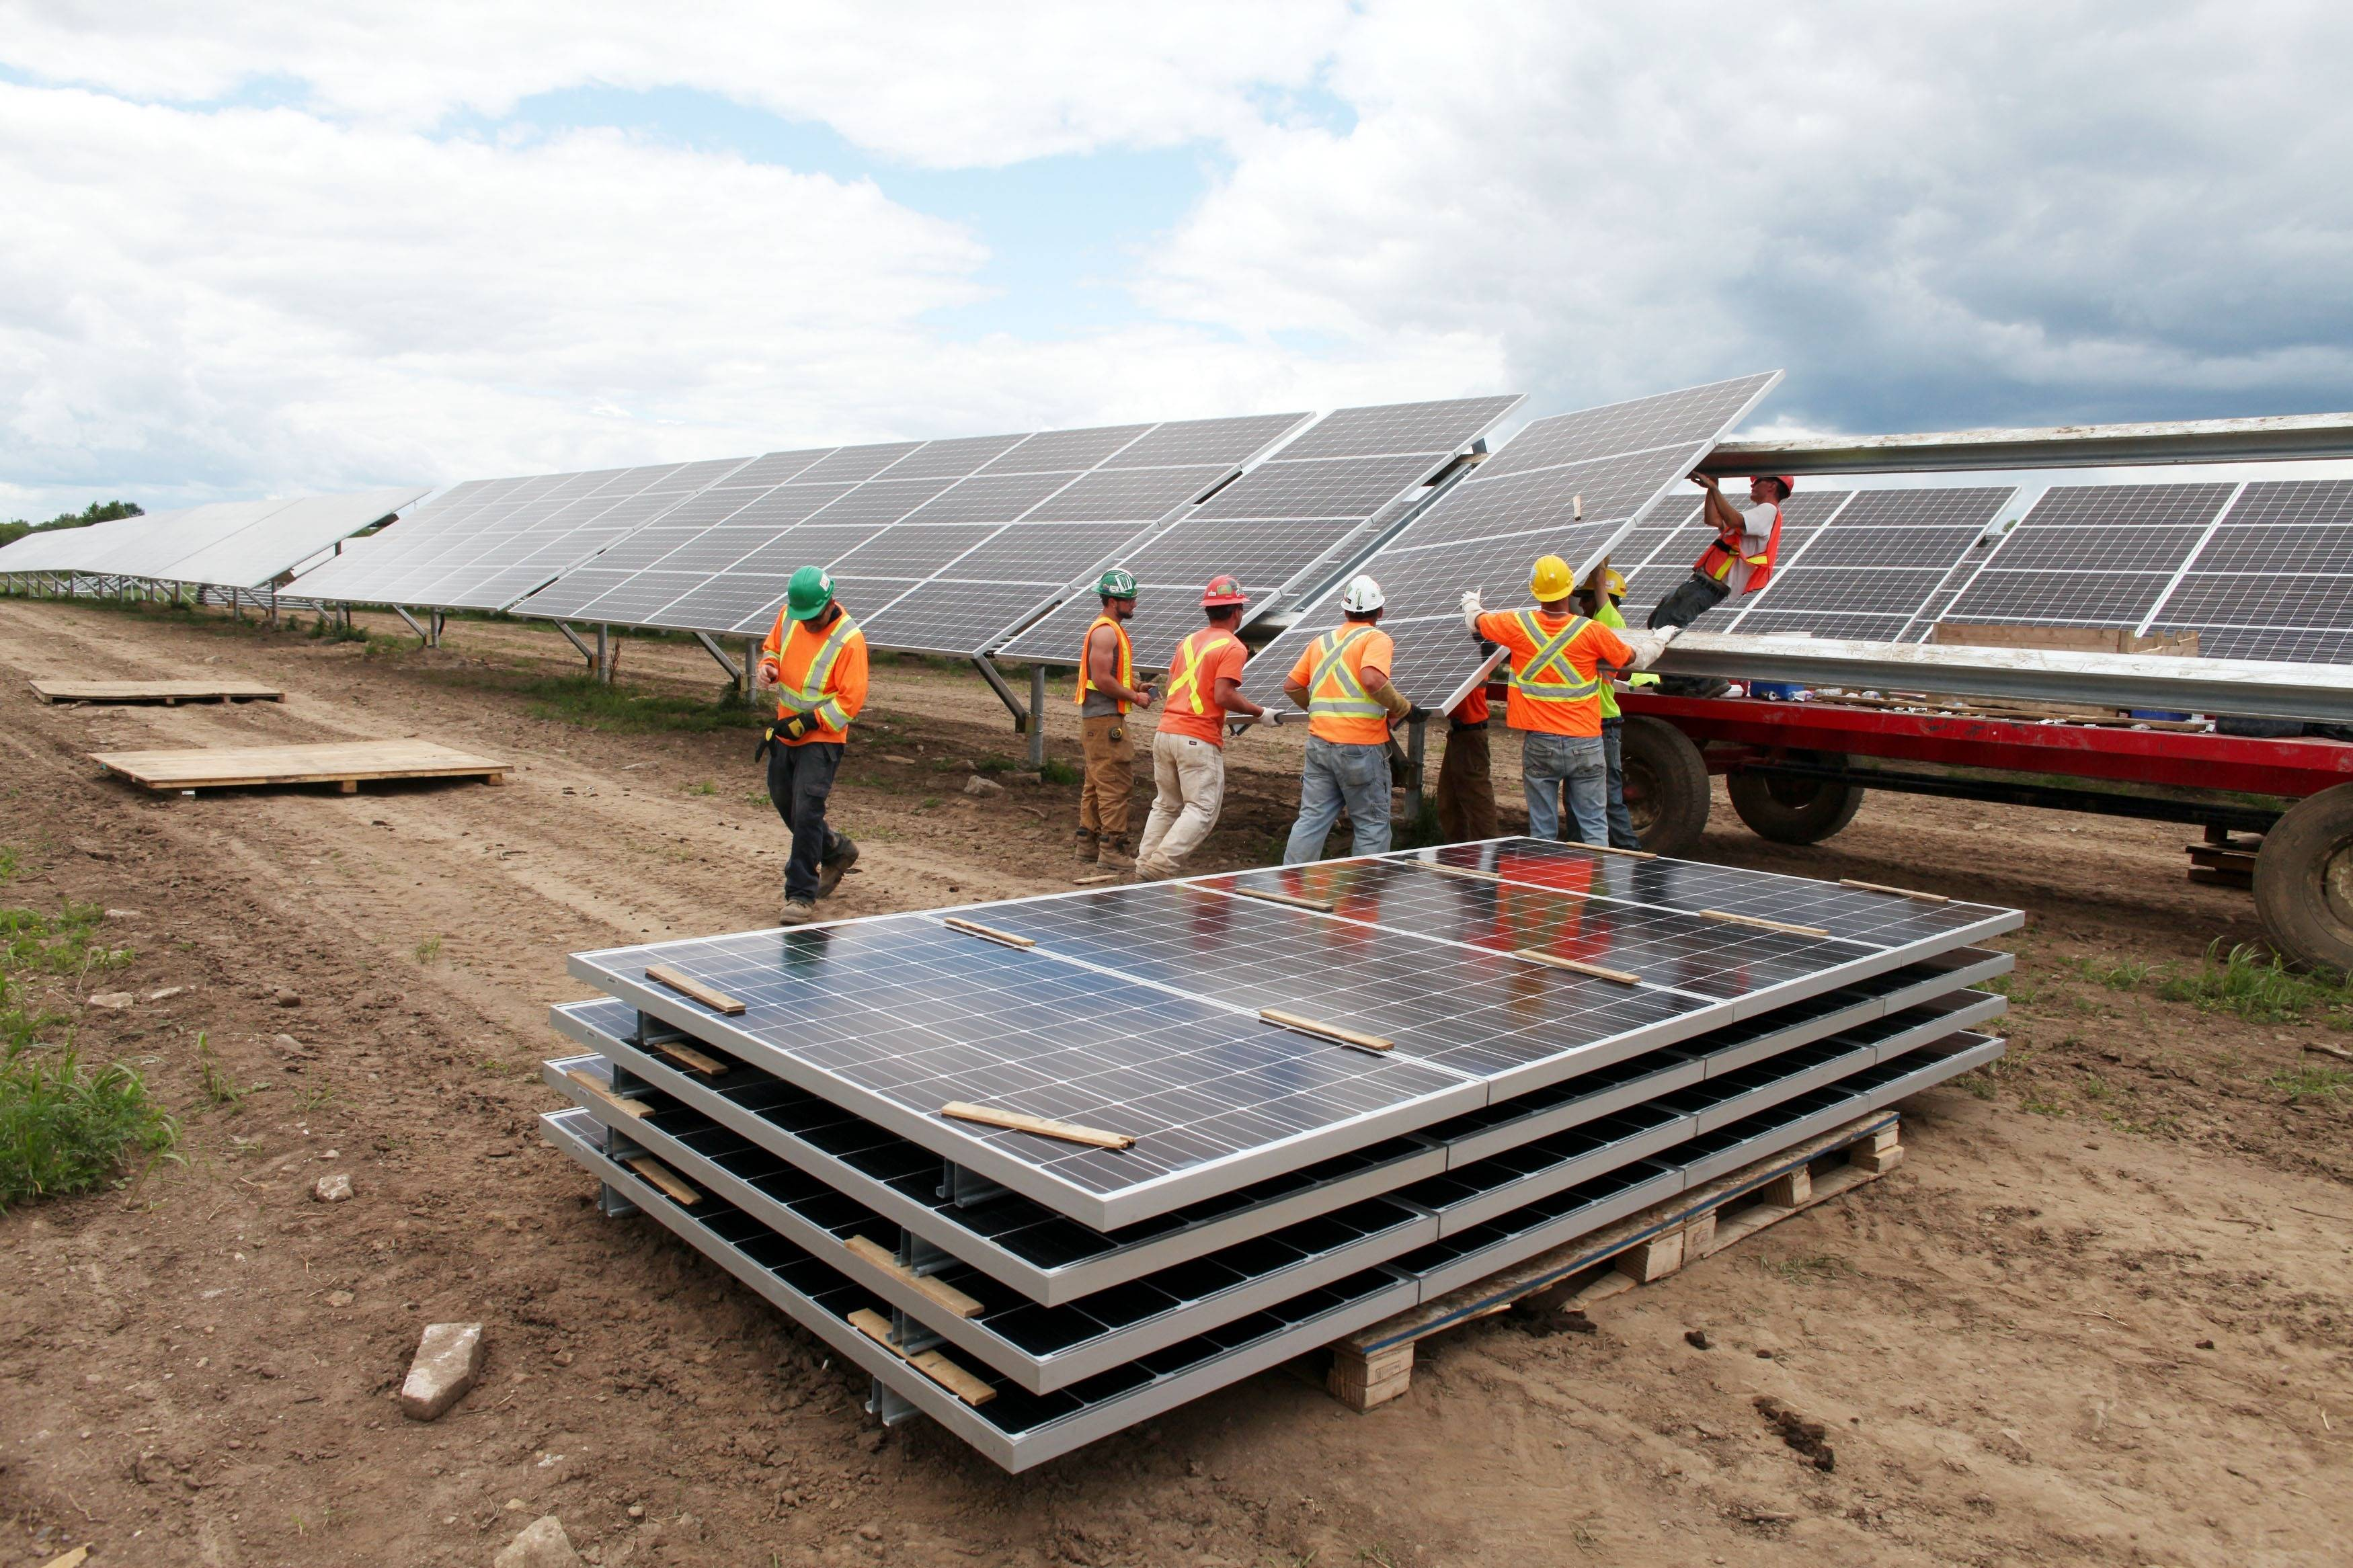 Solar power surging to forefront of Canadian energy - The